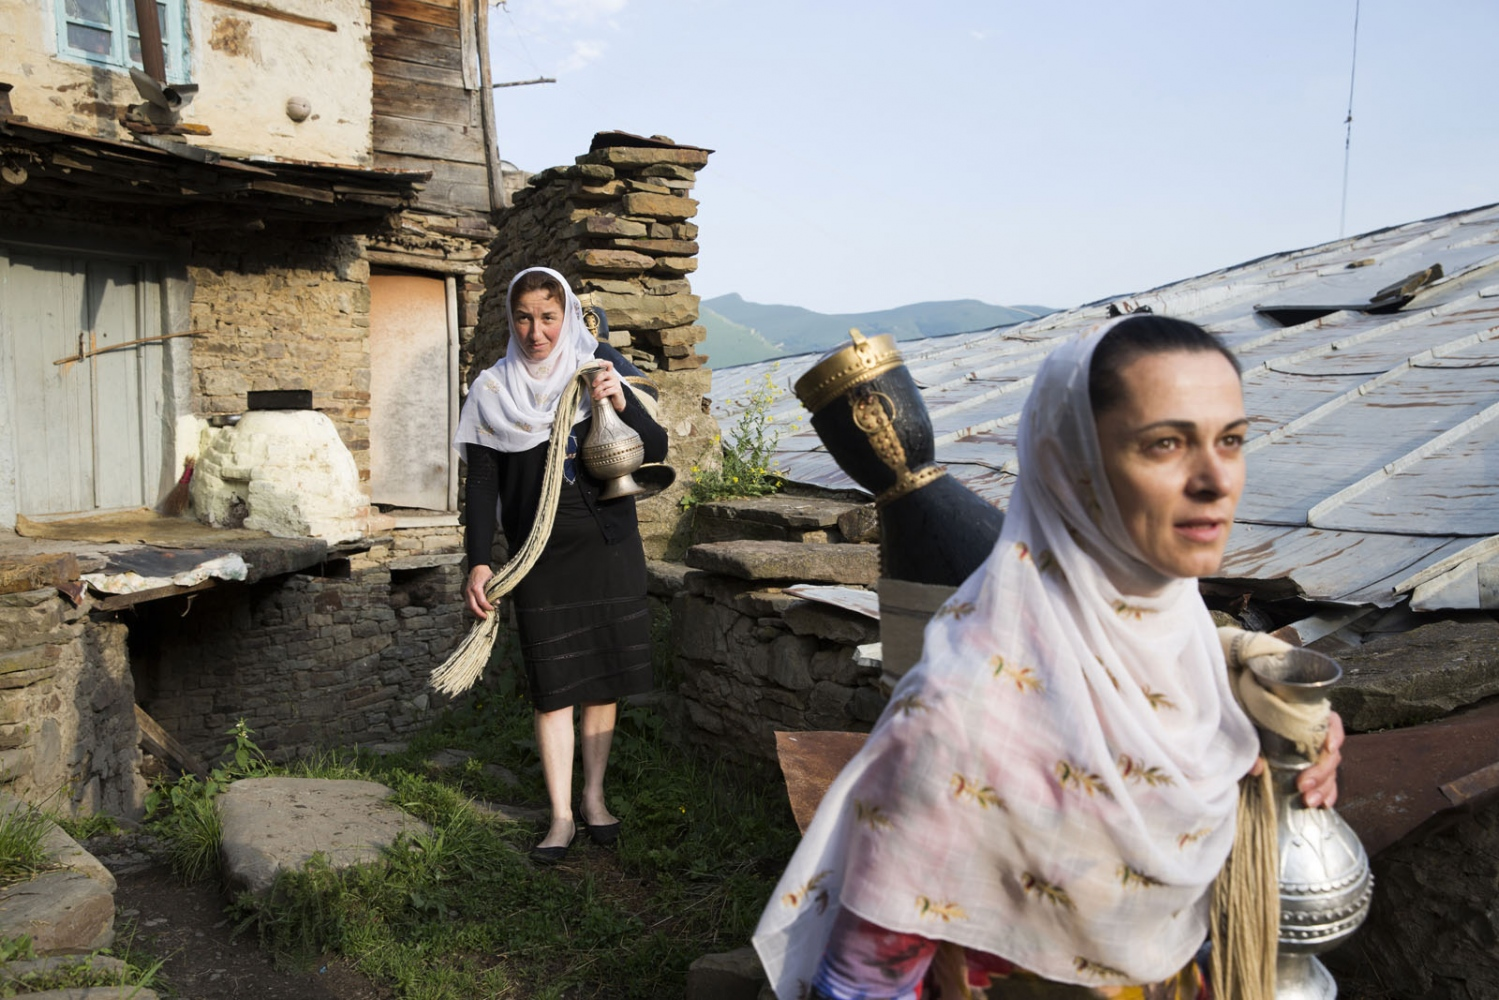 Two local women walk through the old town of Kubachi after having collected water from a local spring. A very traditional village, the women still use the old original containers to collect the water. The village inhabited by people of the Dargin ethnic group is famous throughout the whole of Russia for its skilled silver craftsmen who are commissioned from across Russia and abroad.